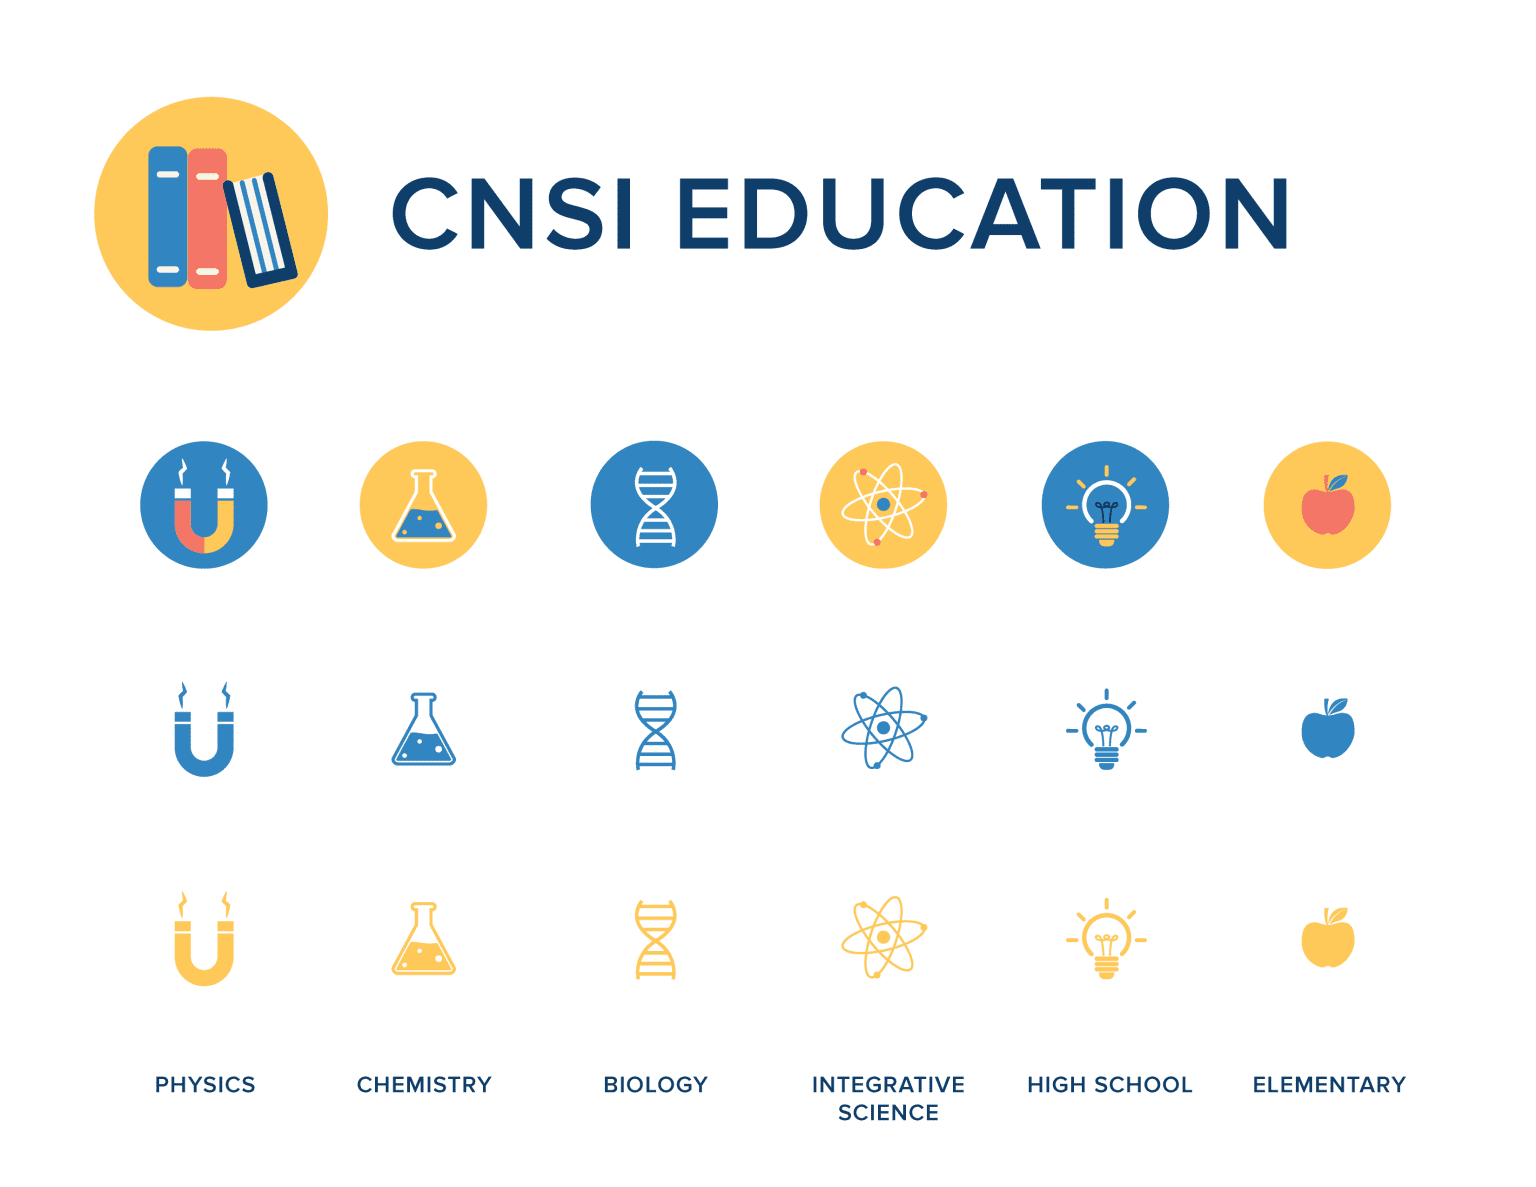 CNSI Education